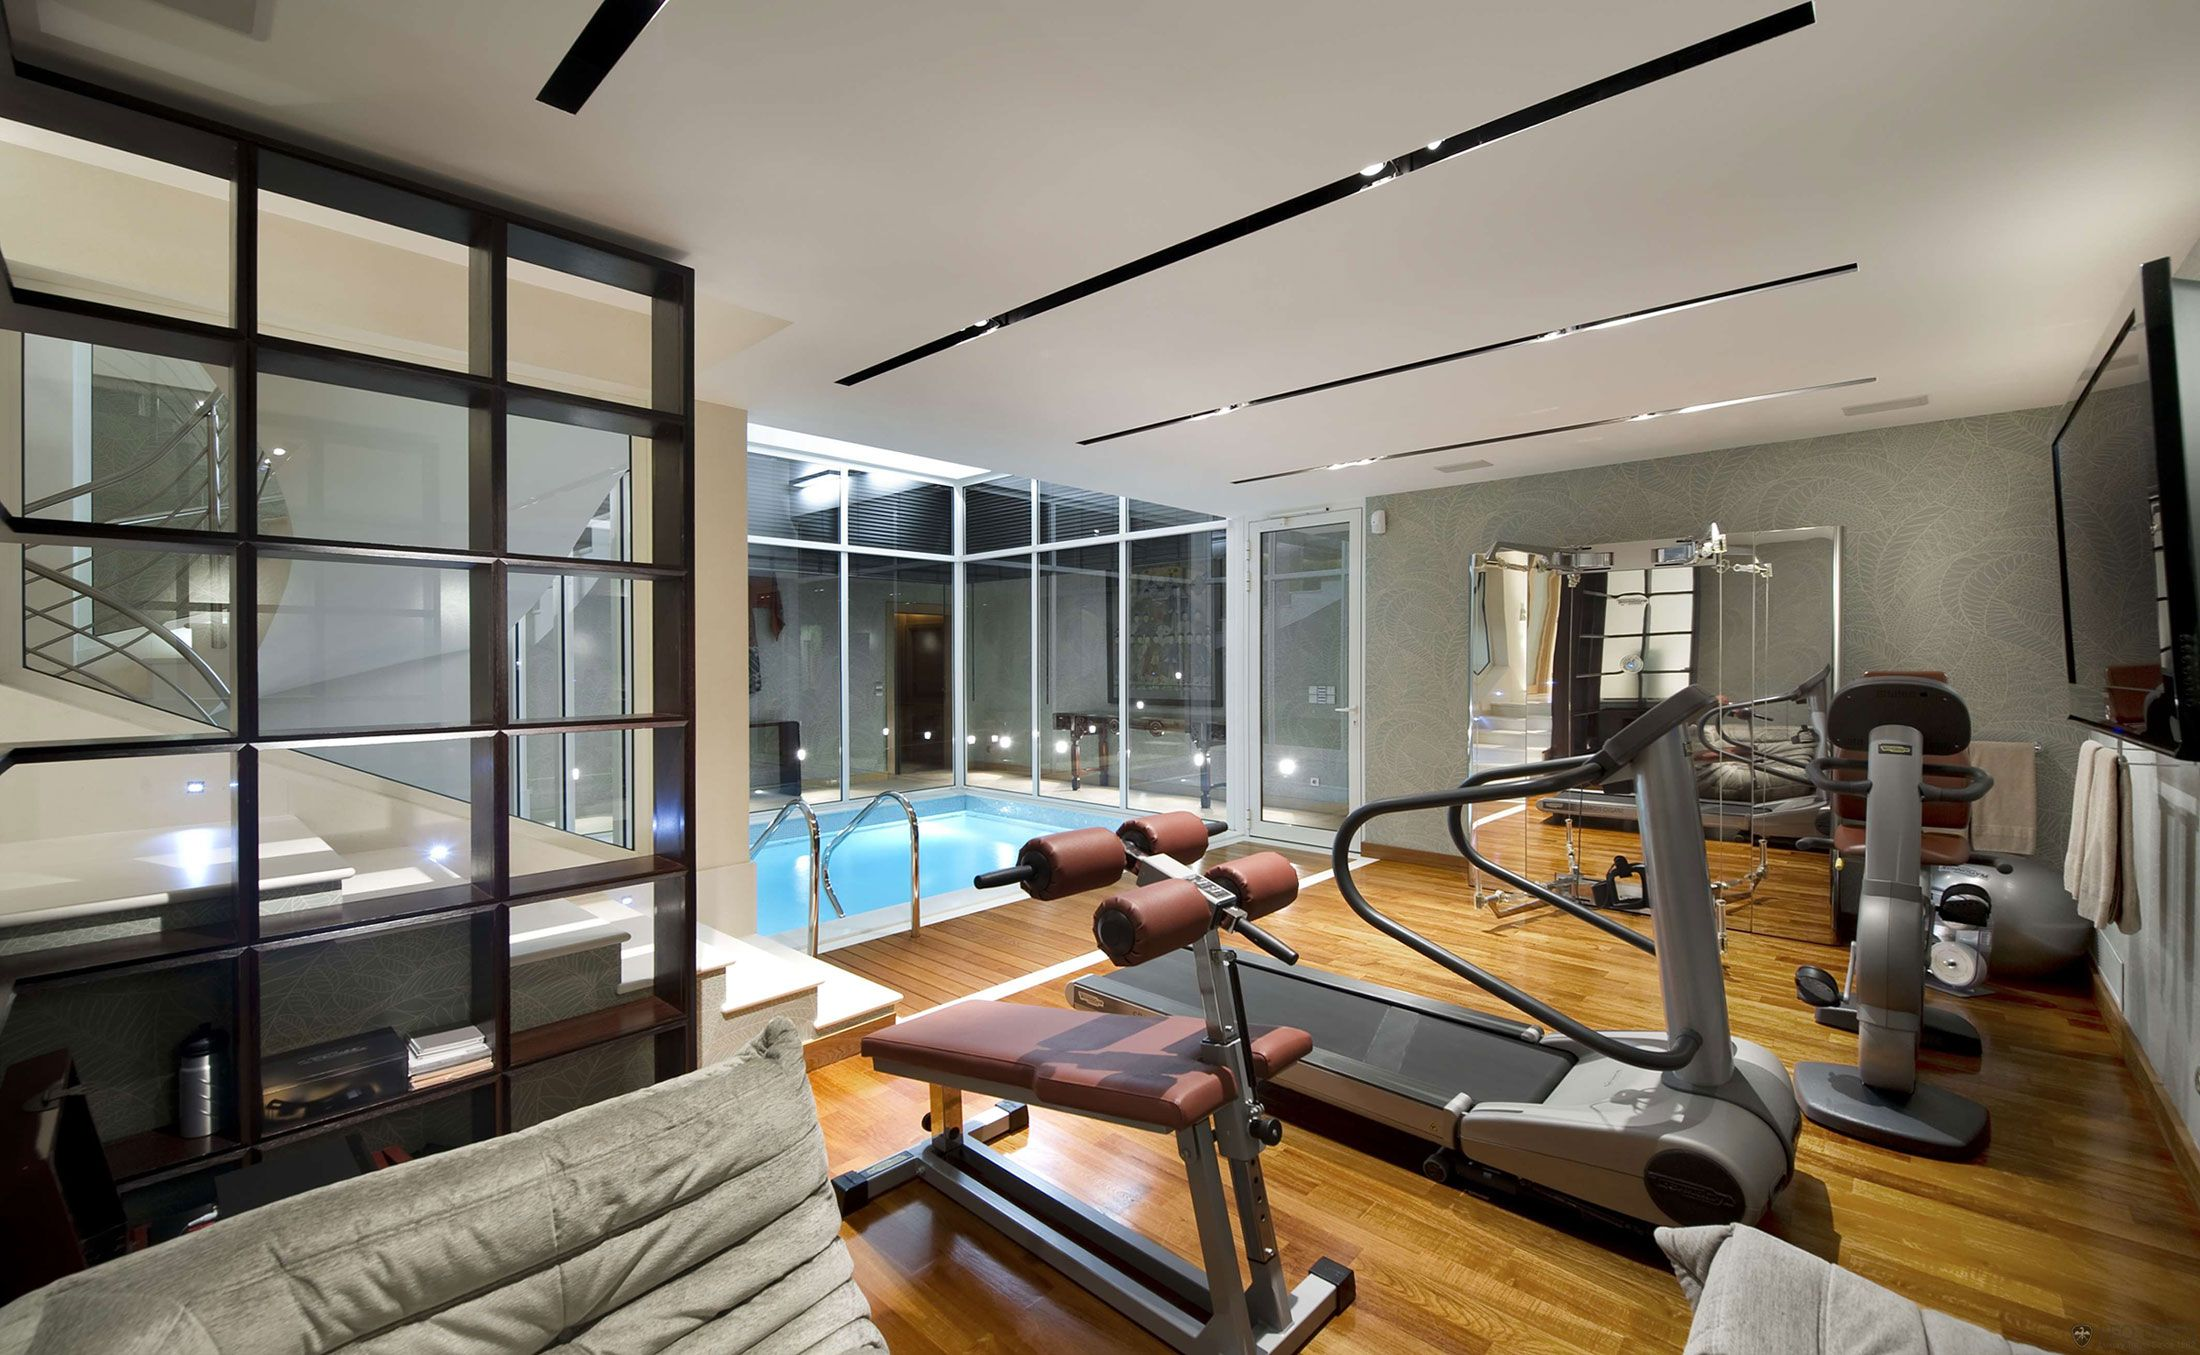 1000+ images about Home Gym on Pinterest - ^